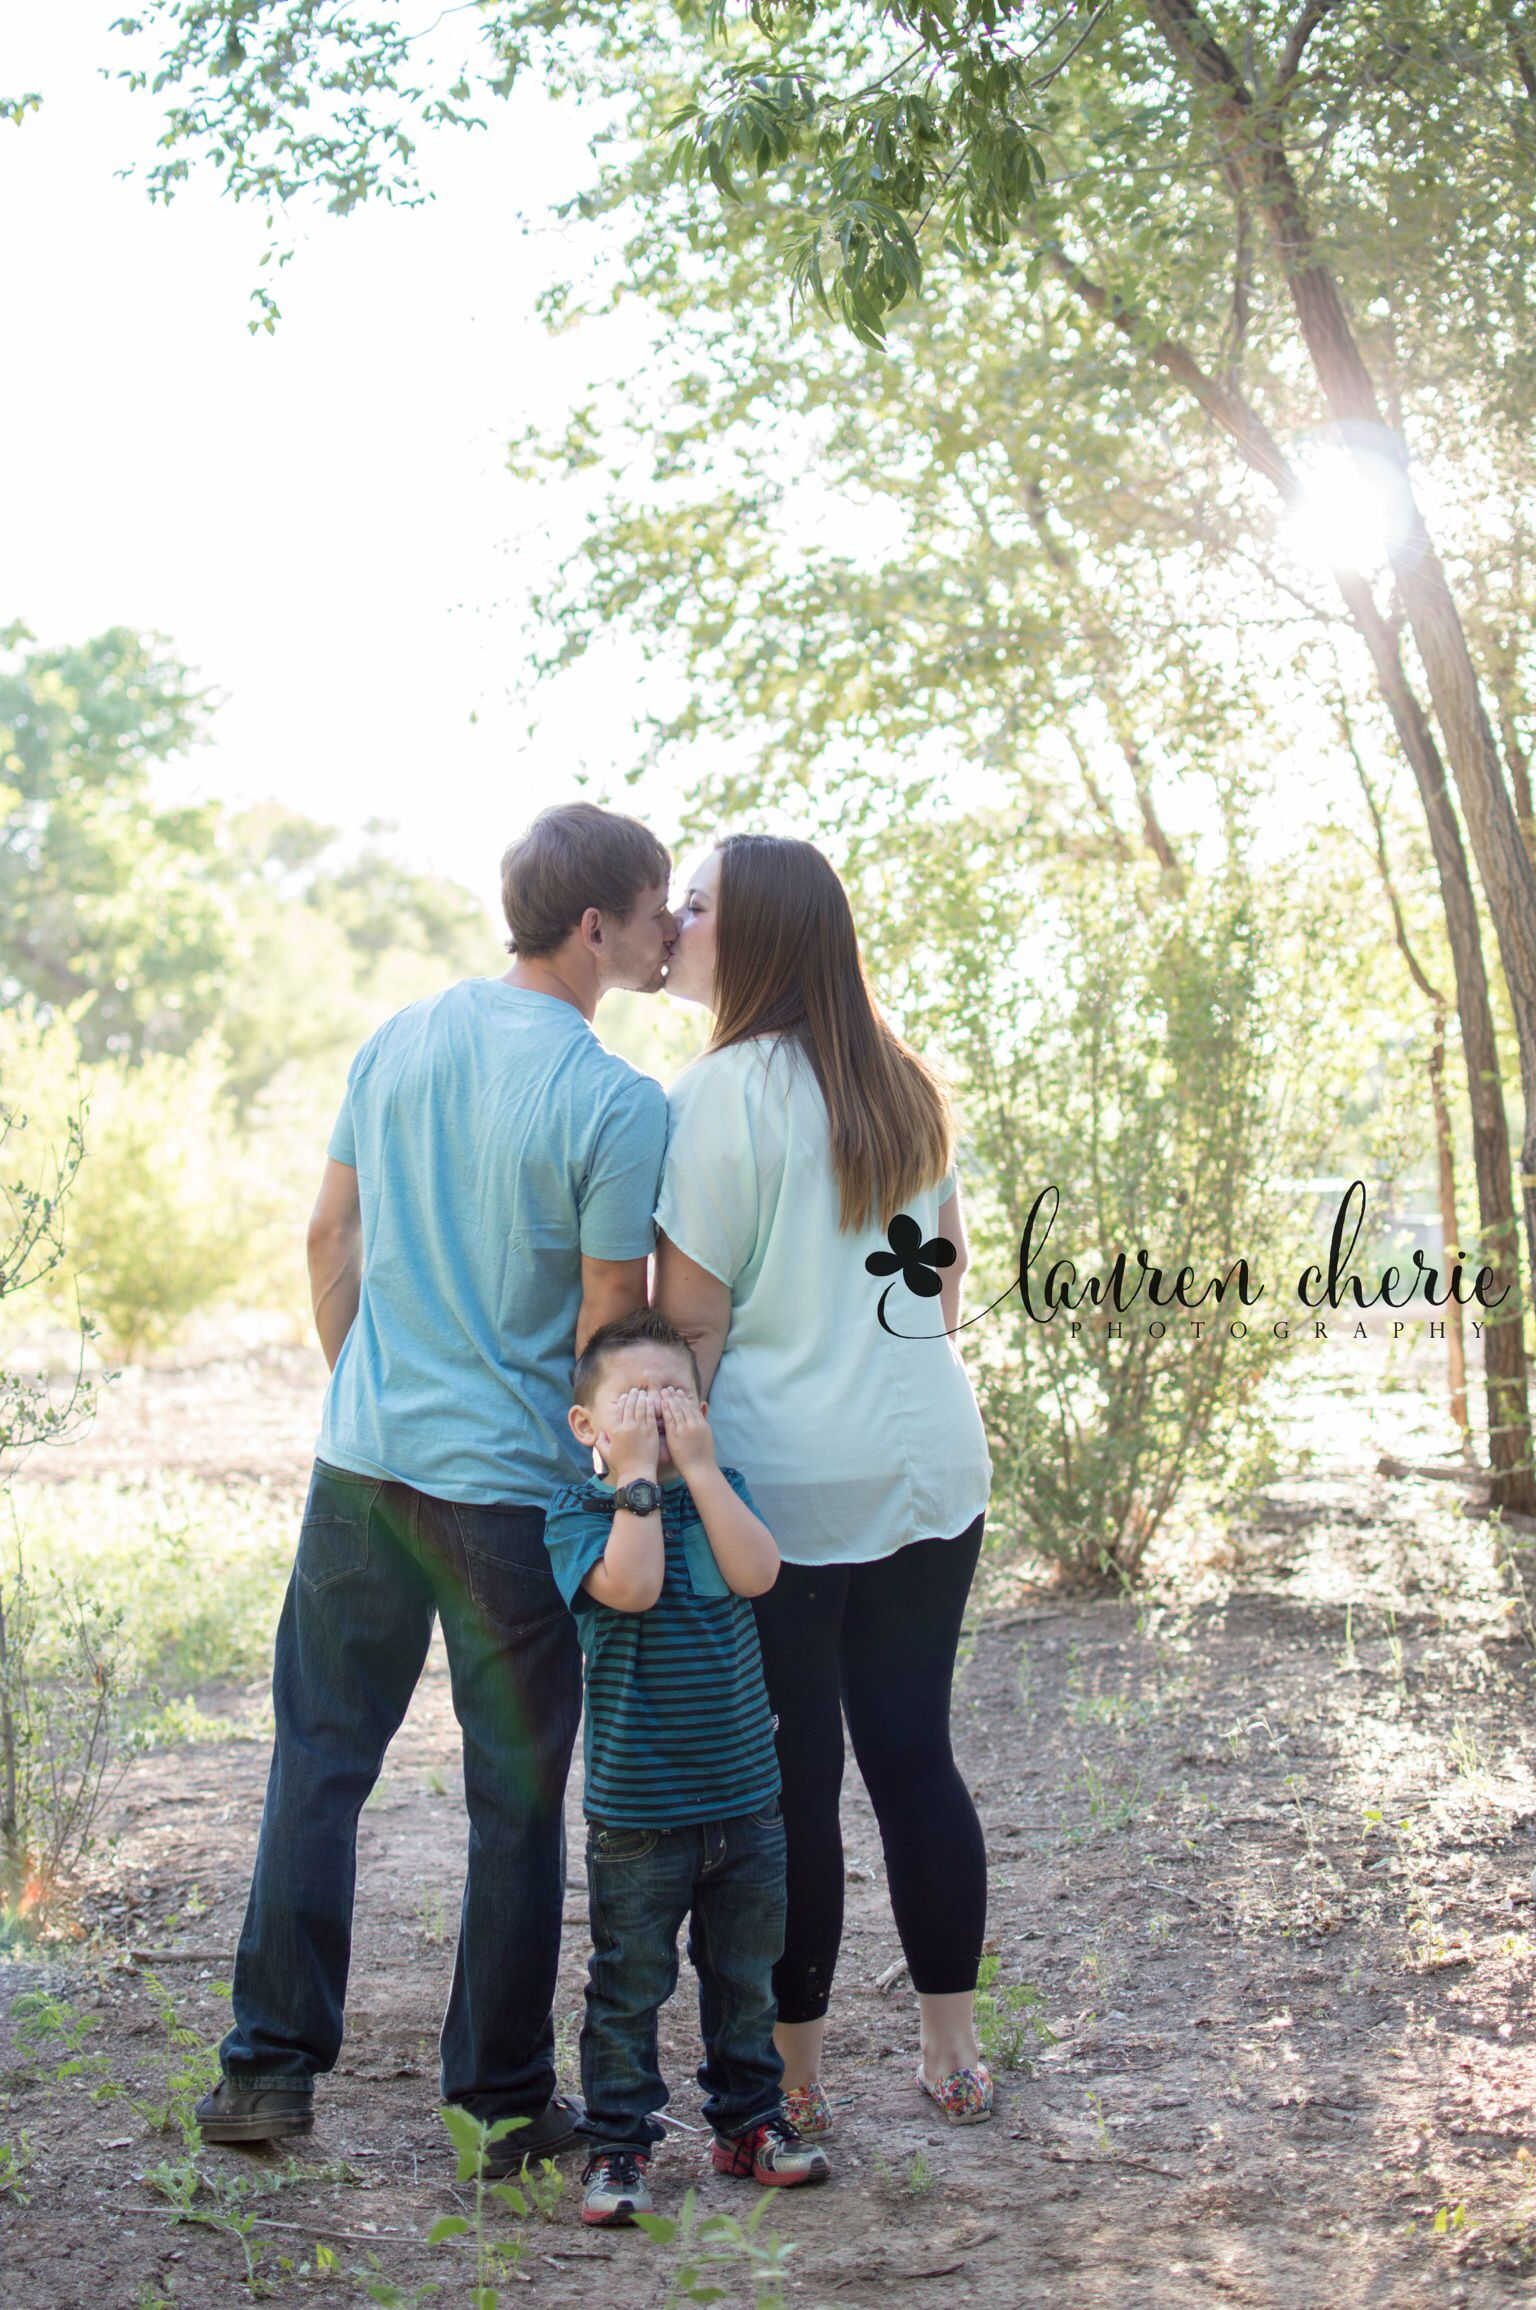 Lauren cherie photography family photography outdoor for Family of 3 picture ideas